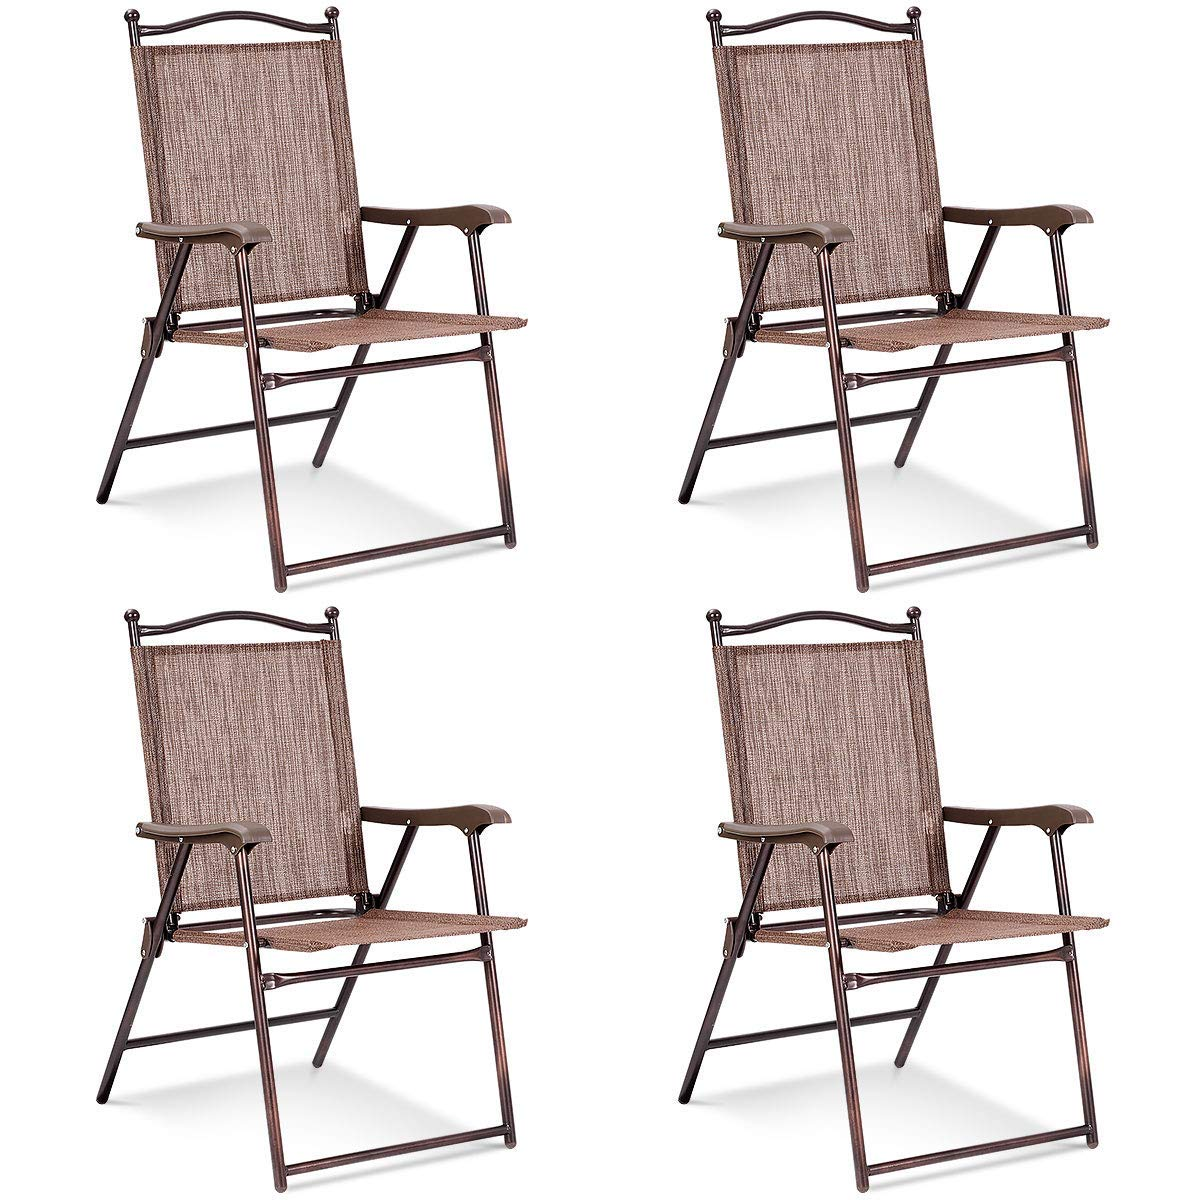 Giantex Set of 4 Folding Sling Back Chairs Indoor Outdoor Reclining Camping Chairs Garden Patio Pool Beach Yard Recliners Lounge Chairs w/Armrest (Brown)